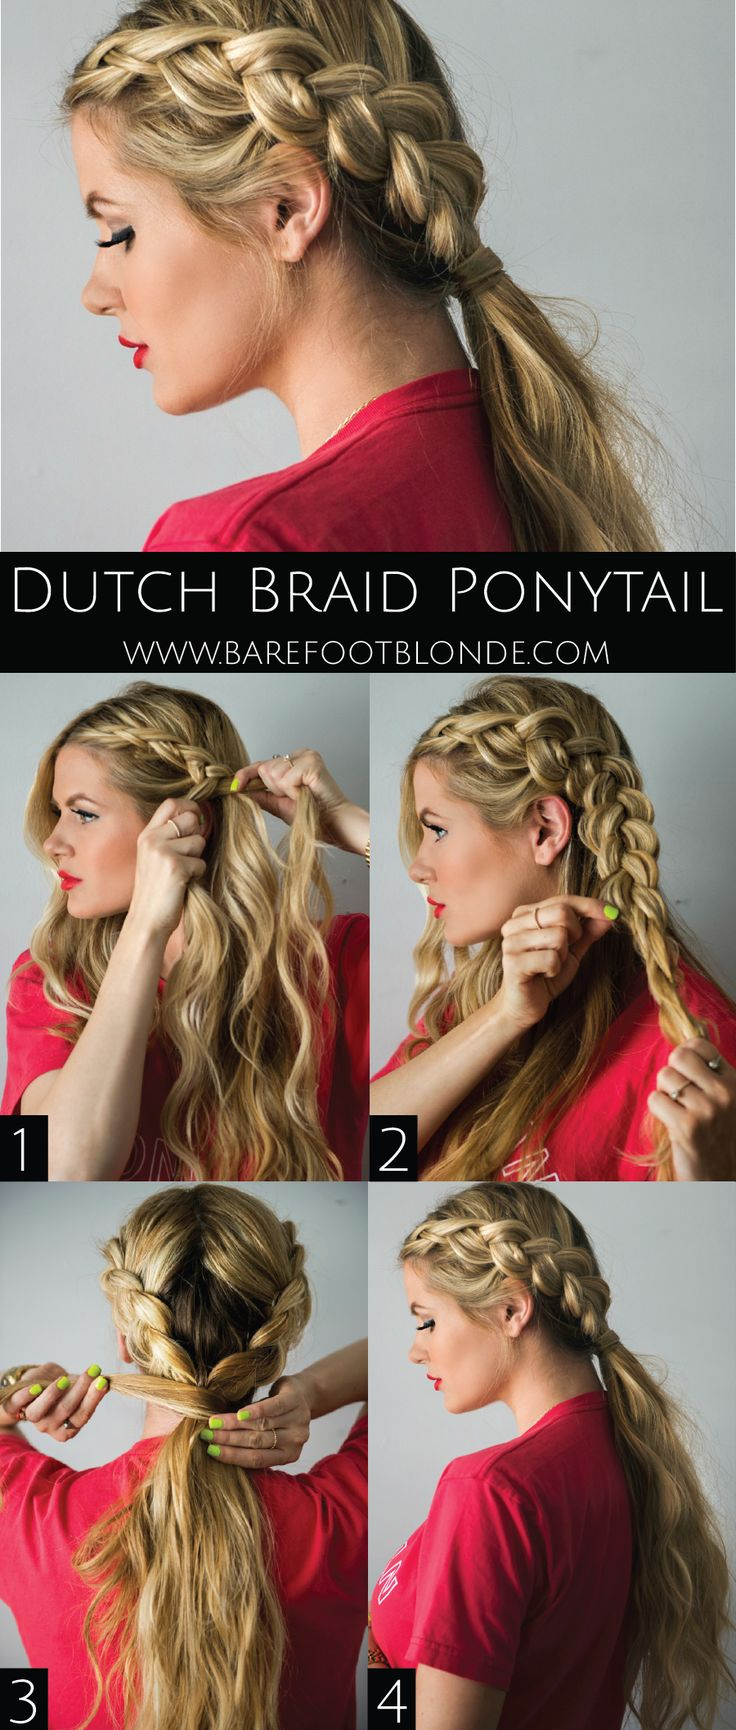 Dutch Braid Ponytail Goals